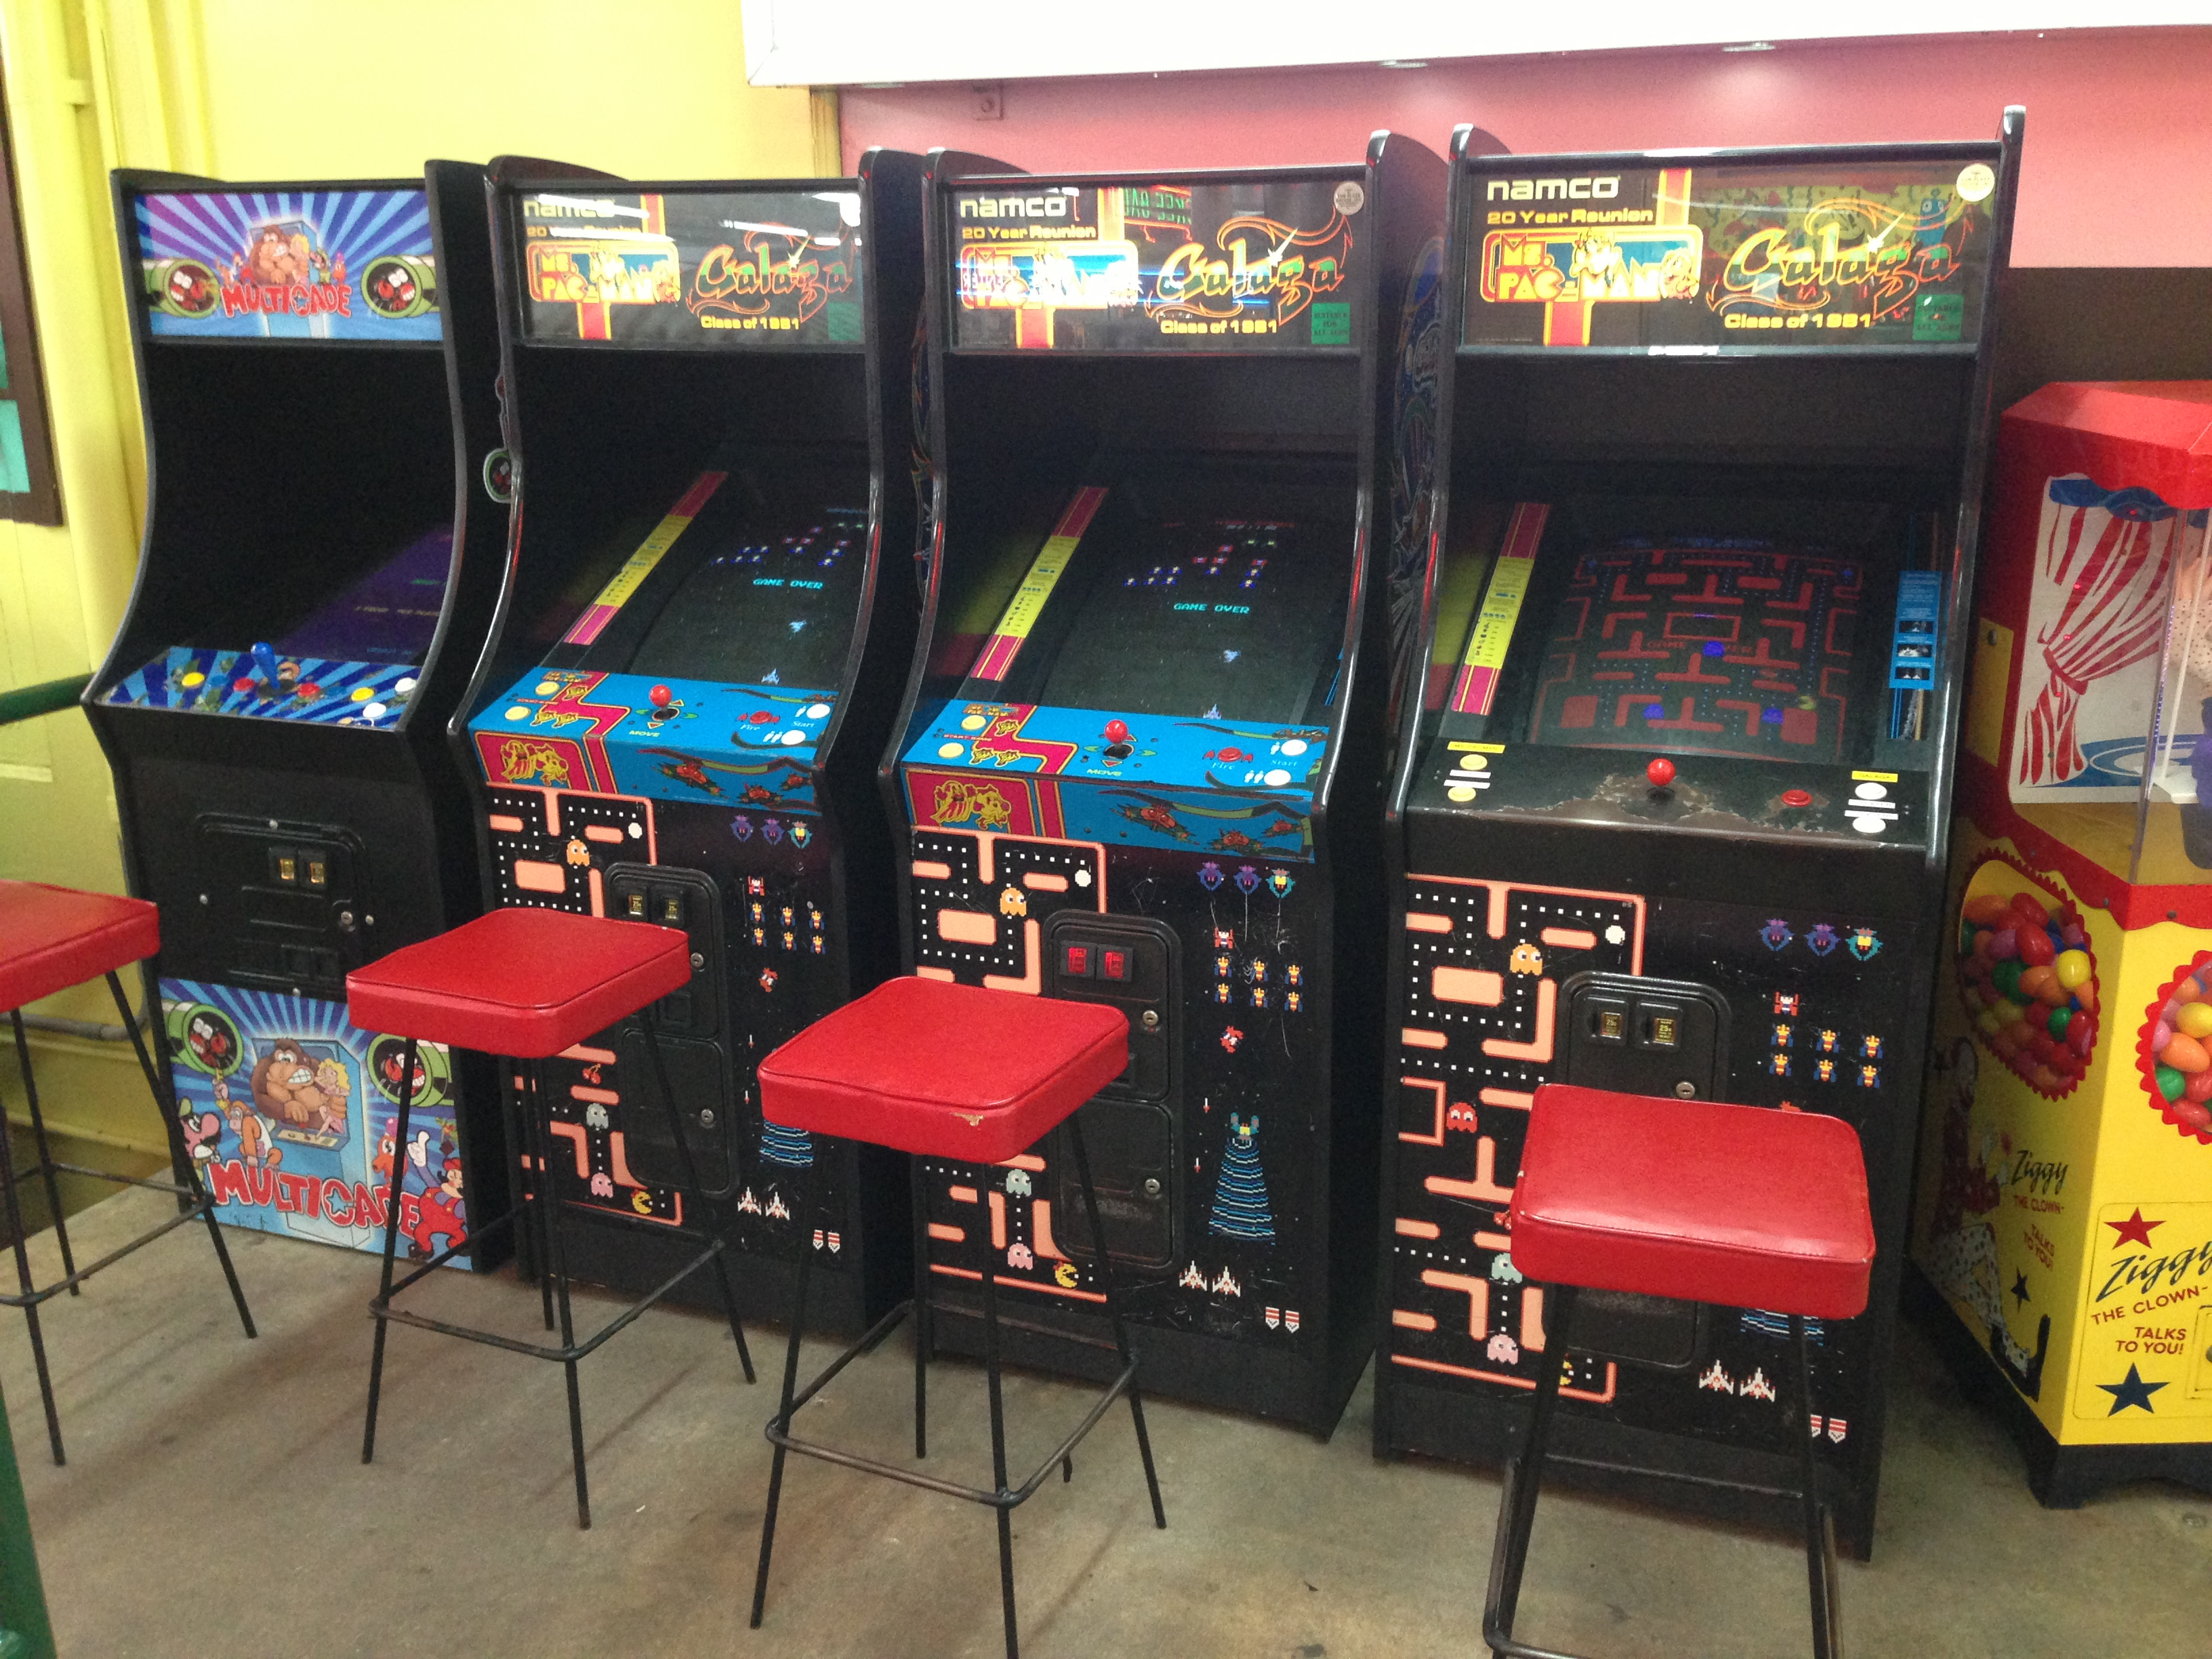 Myrtle Beach Arcades Video Games Pinball Machines and Skee Ball